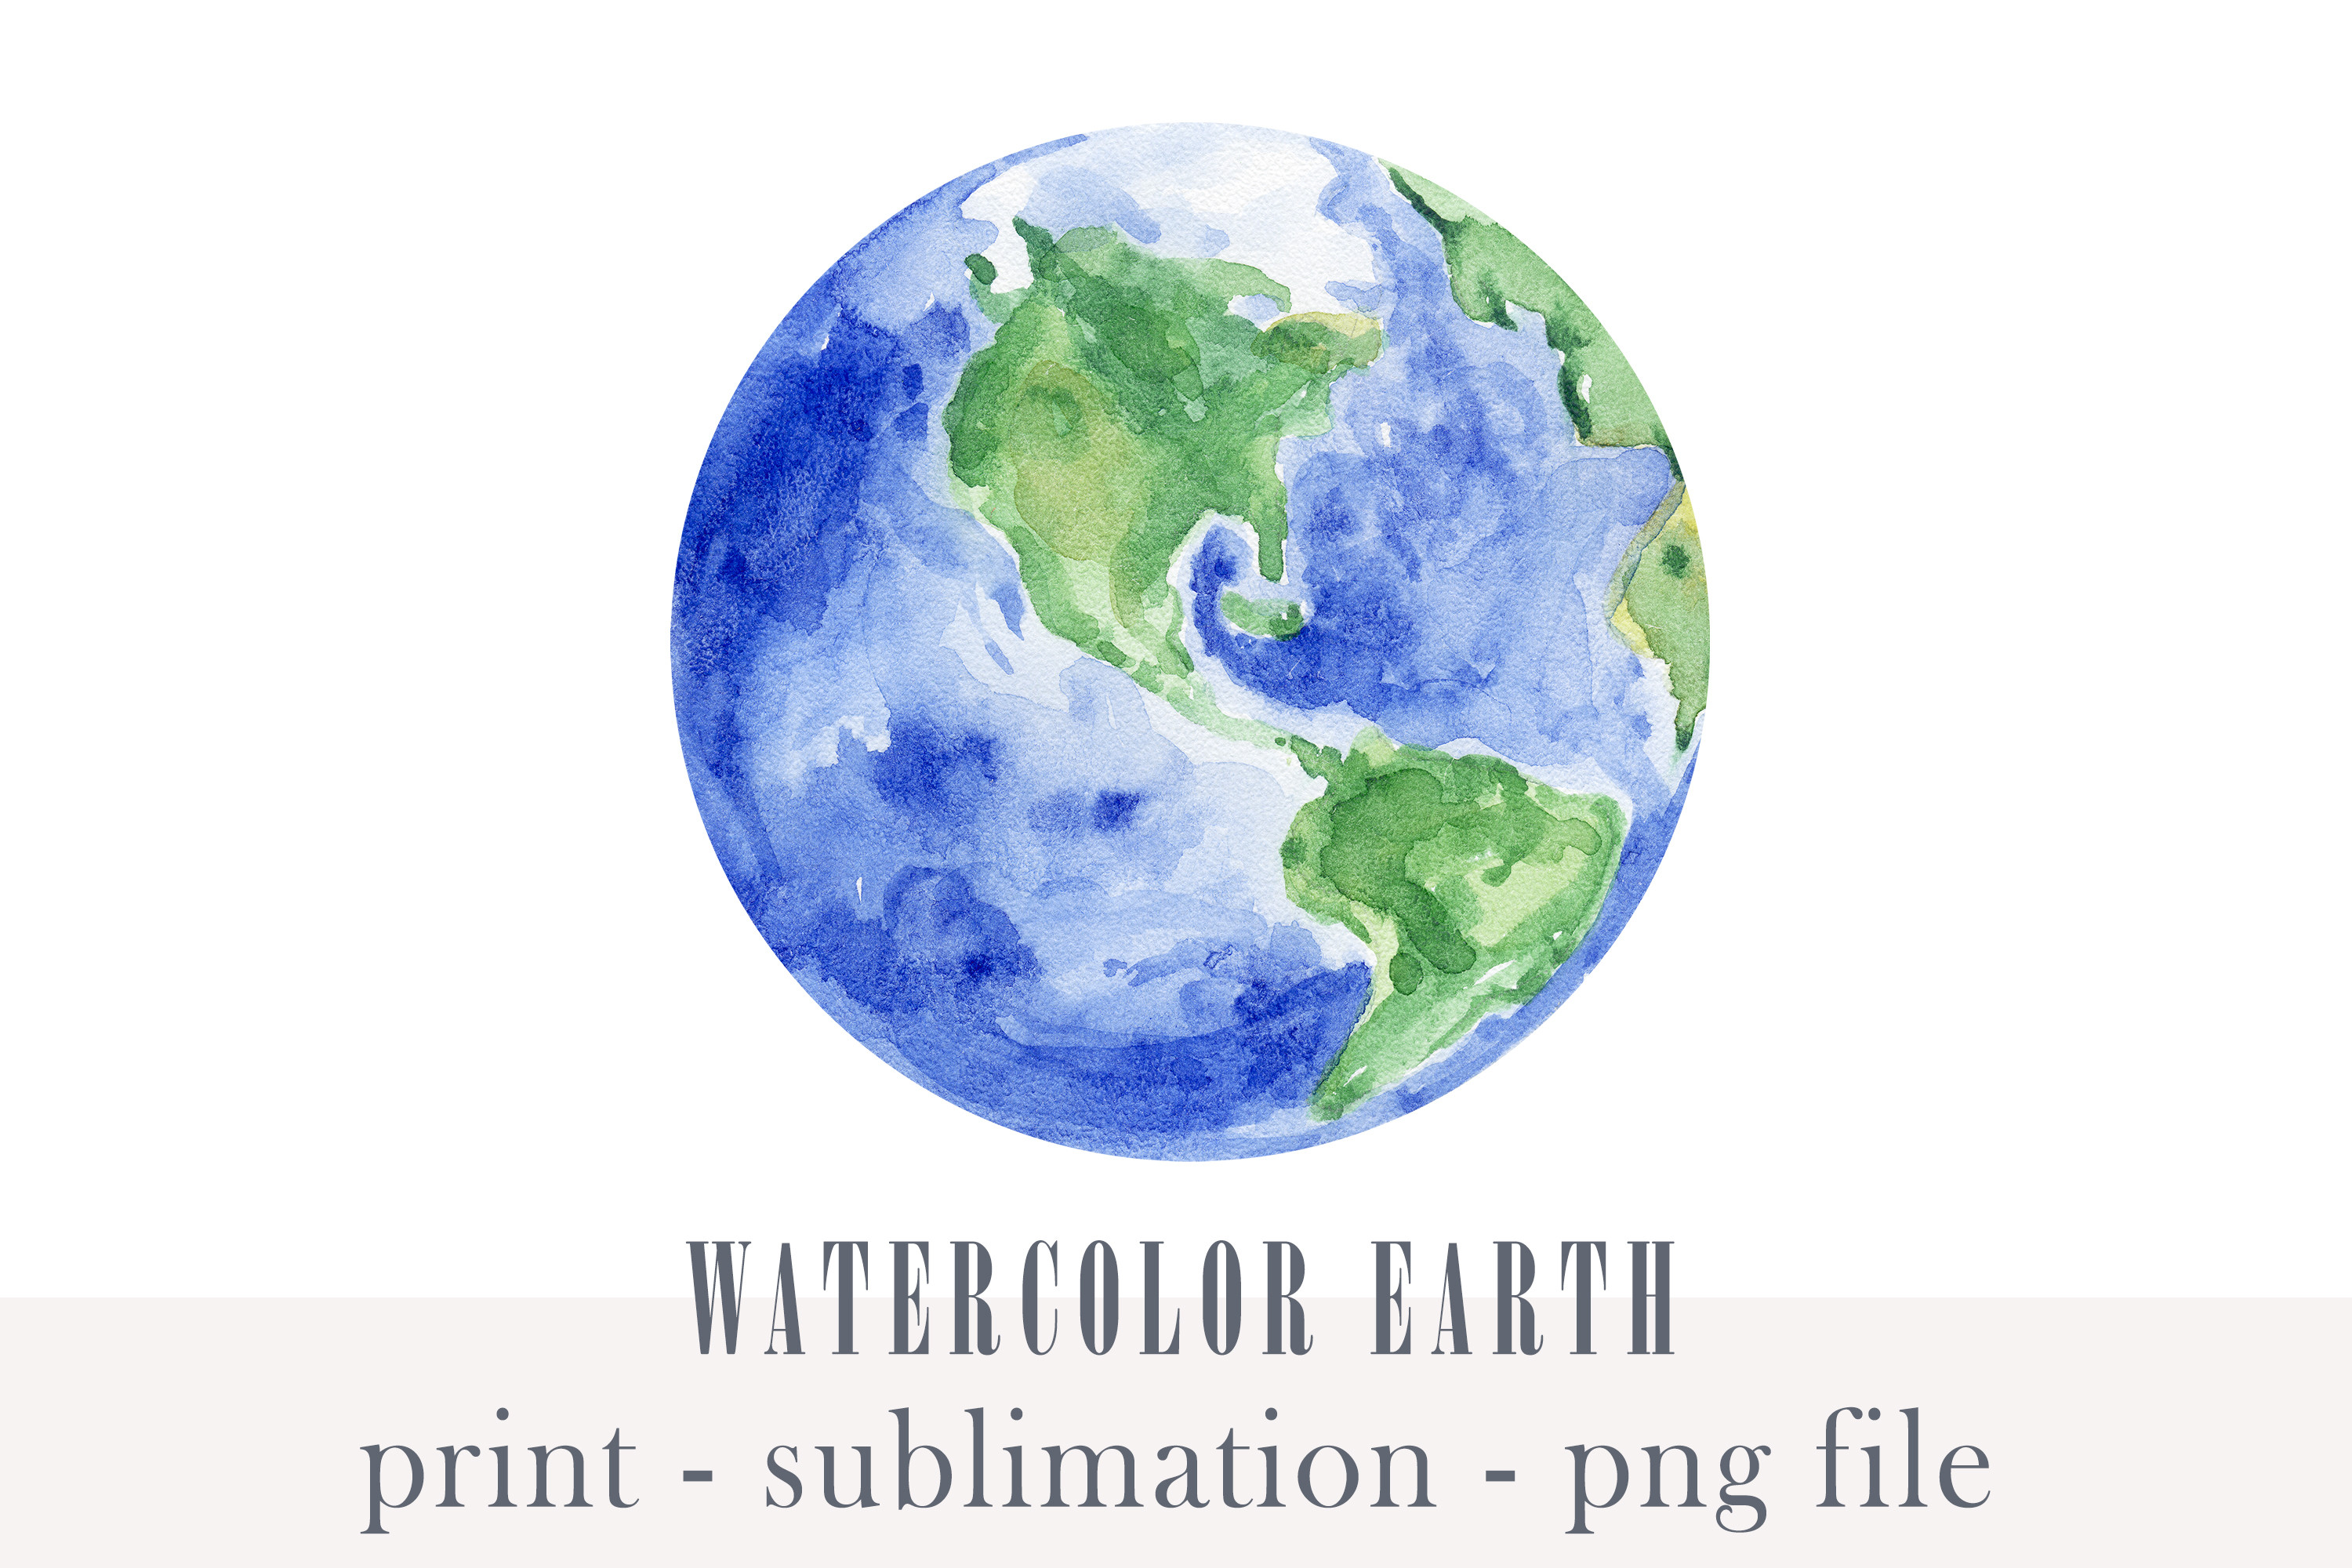 Watercolor Earth Planet Clipart - Png SVG File